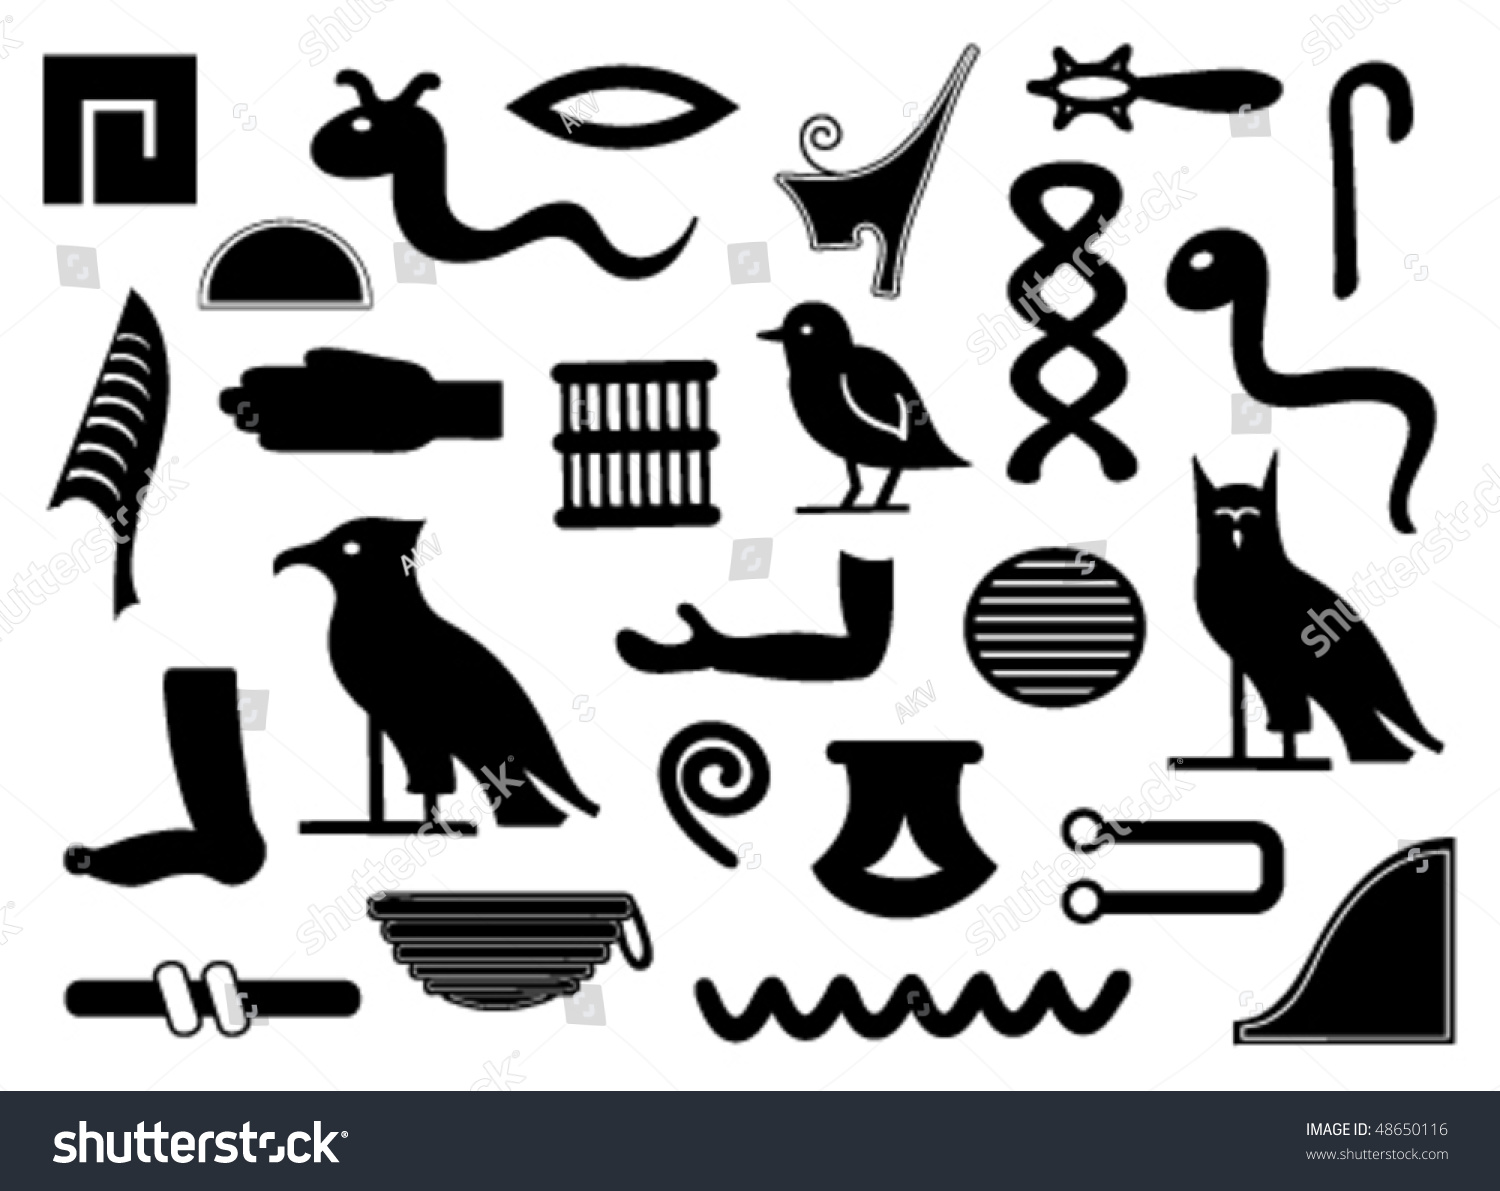 Complete Set Egyptian Hieroglyphs Stock Vector 48650116 ...